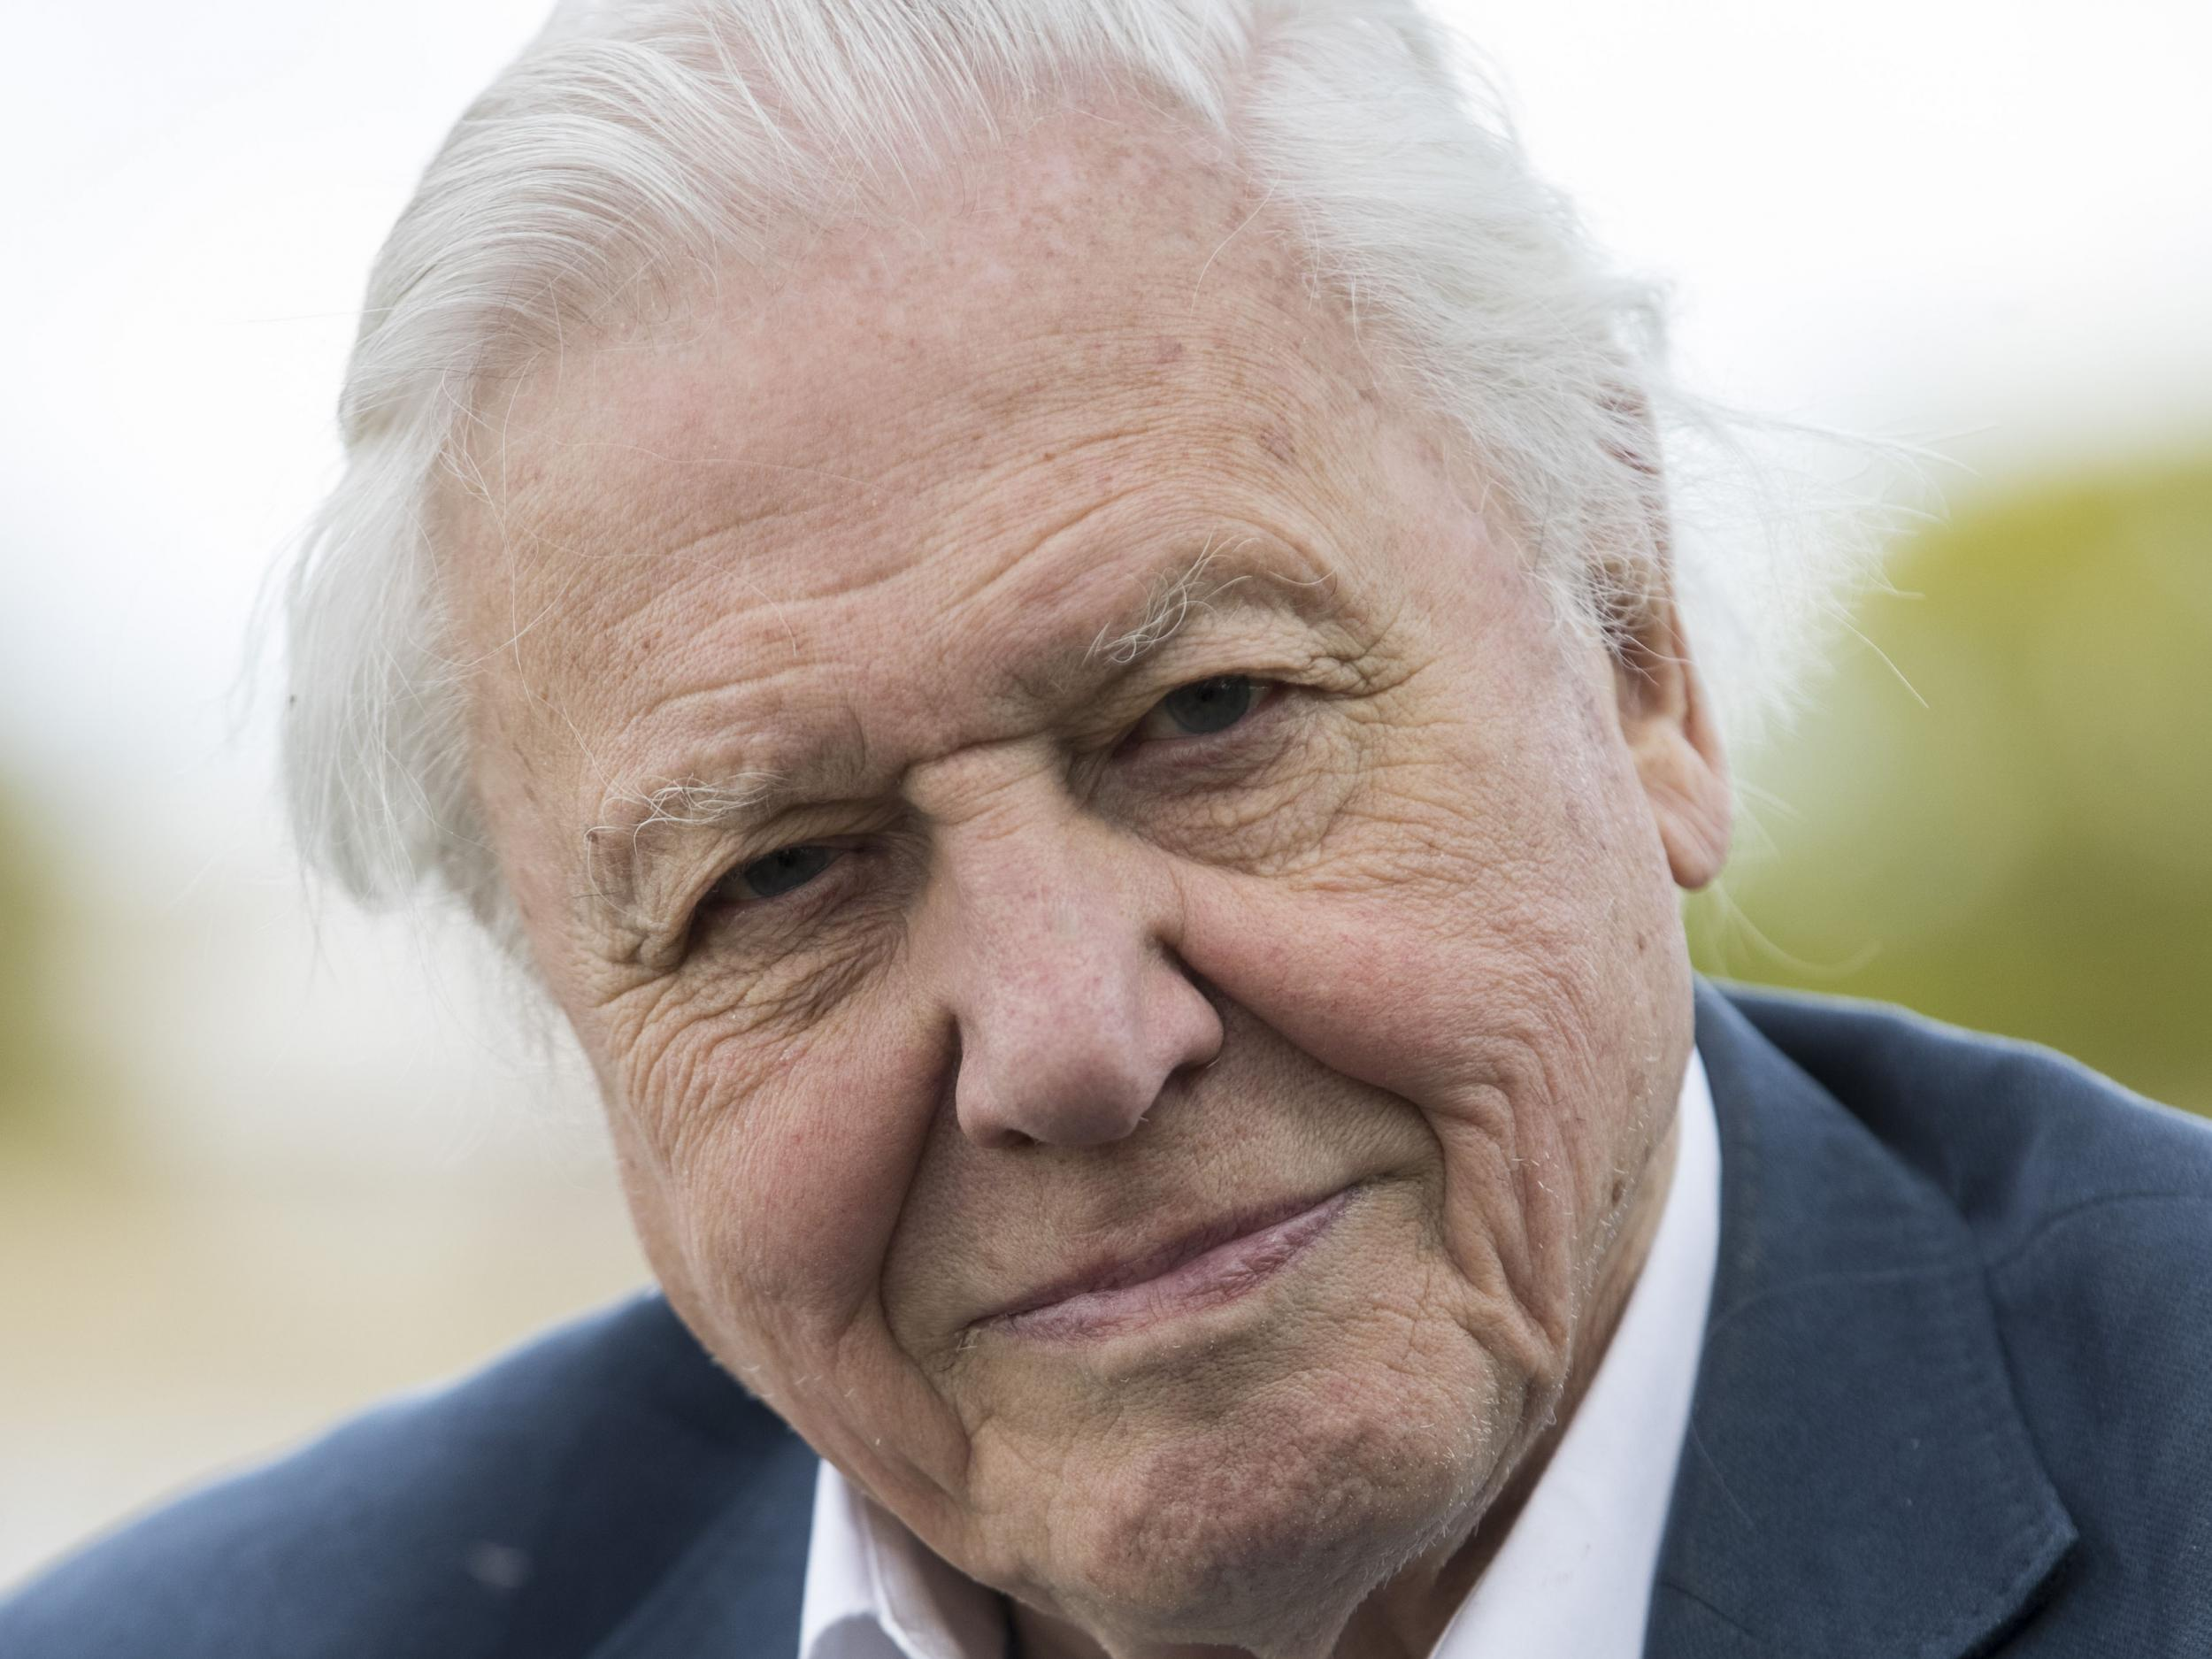 David Attenborough says people are 'fed up' with EU but refuses to s…